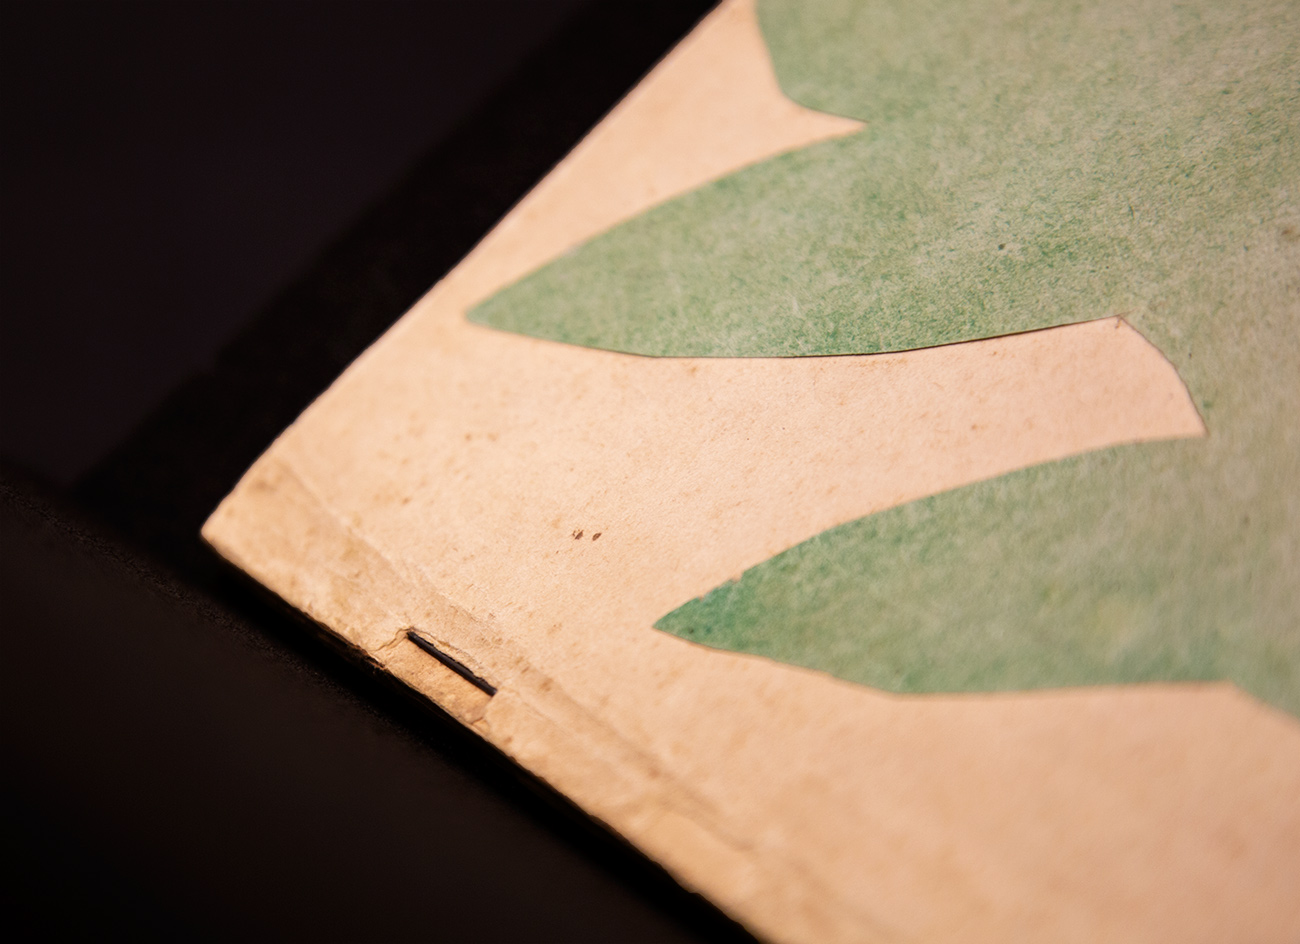 Close-up view of a handmade book showing how collaged green paper is affixed to the cover page below